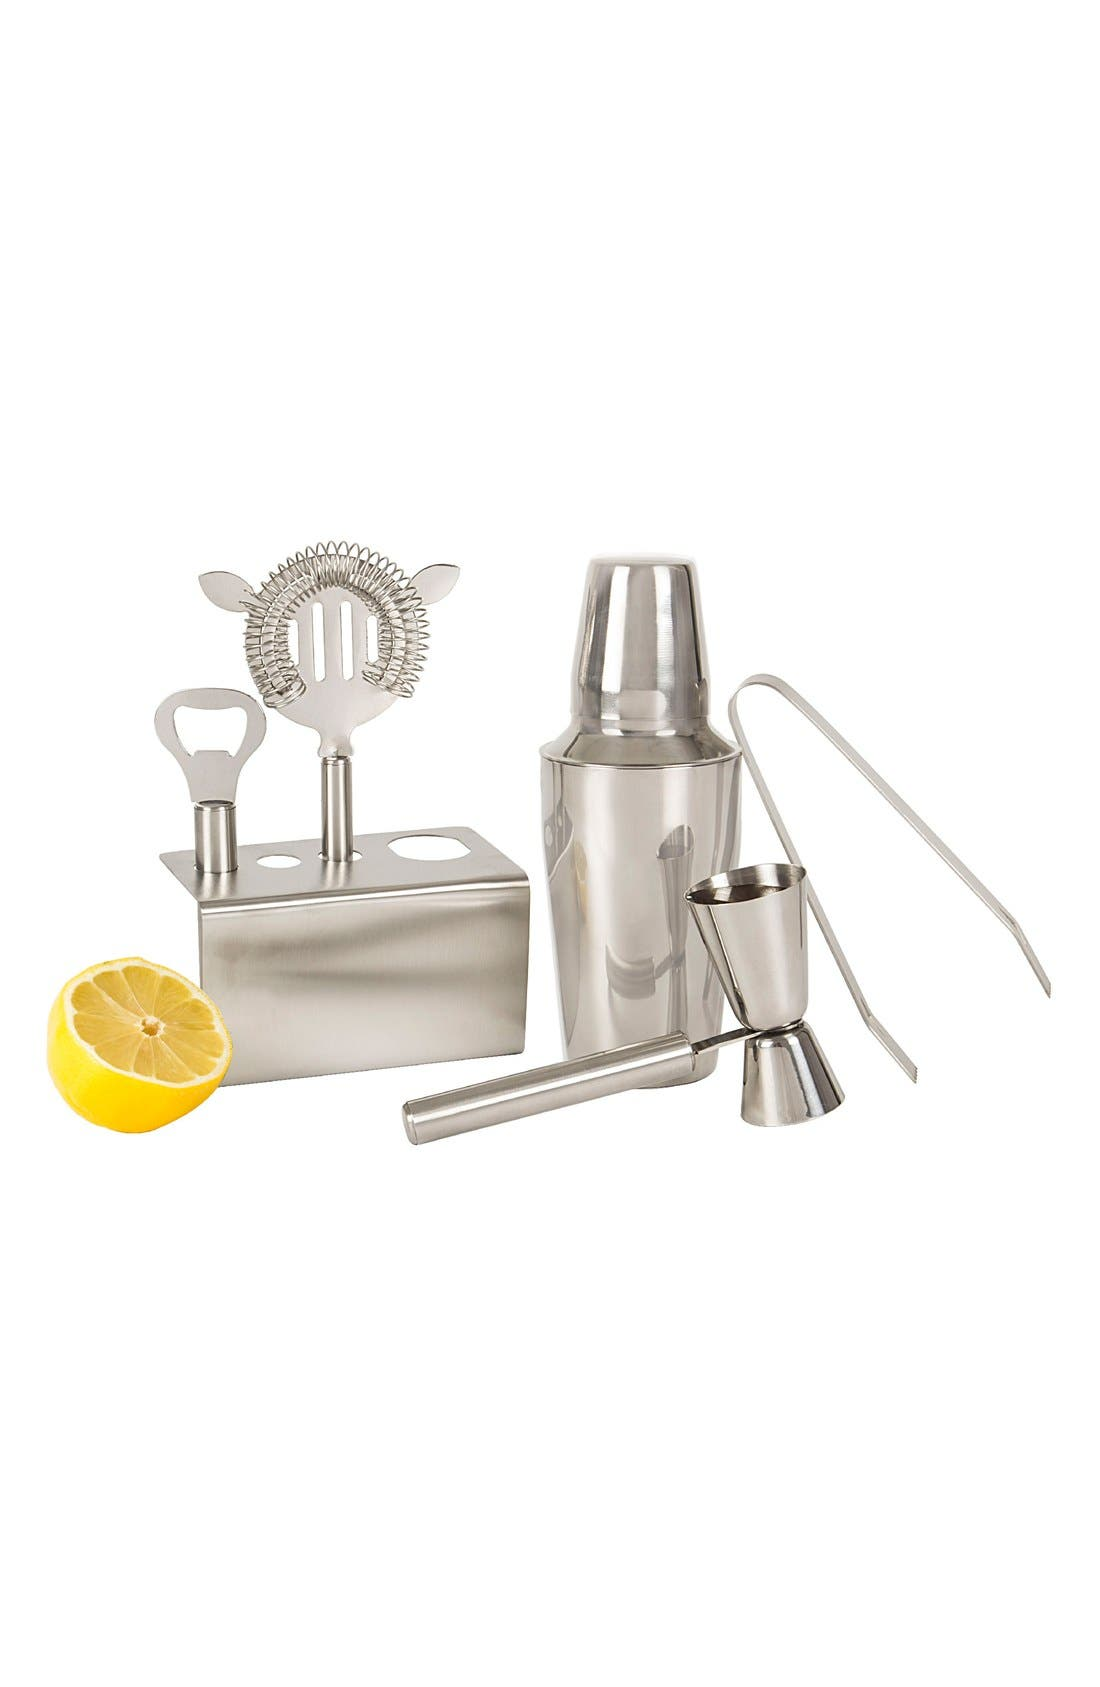 Monogram Stainless Steel Mixology Set,                             Main thumbnail 1, color,                             040